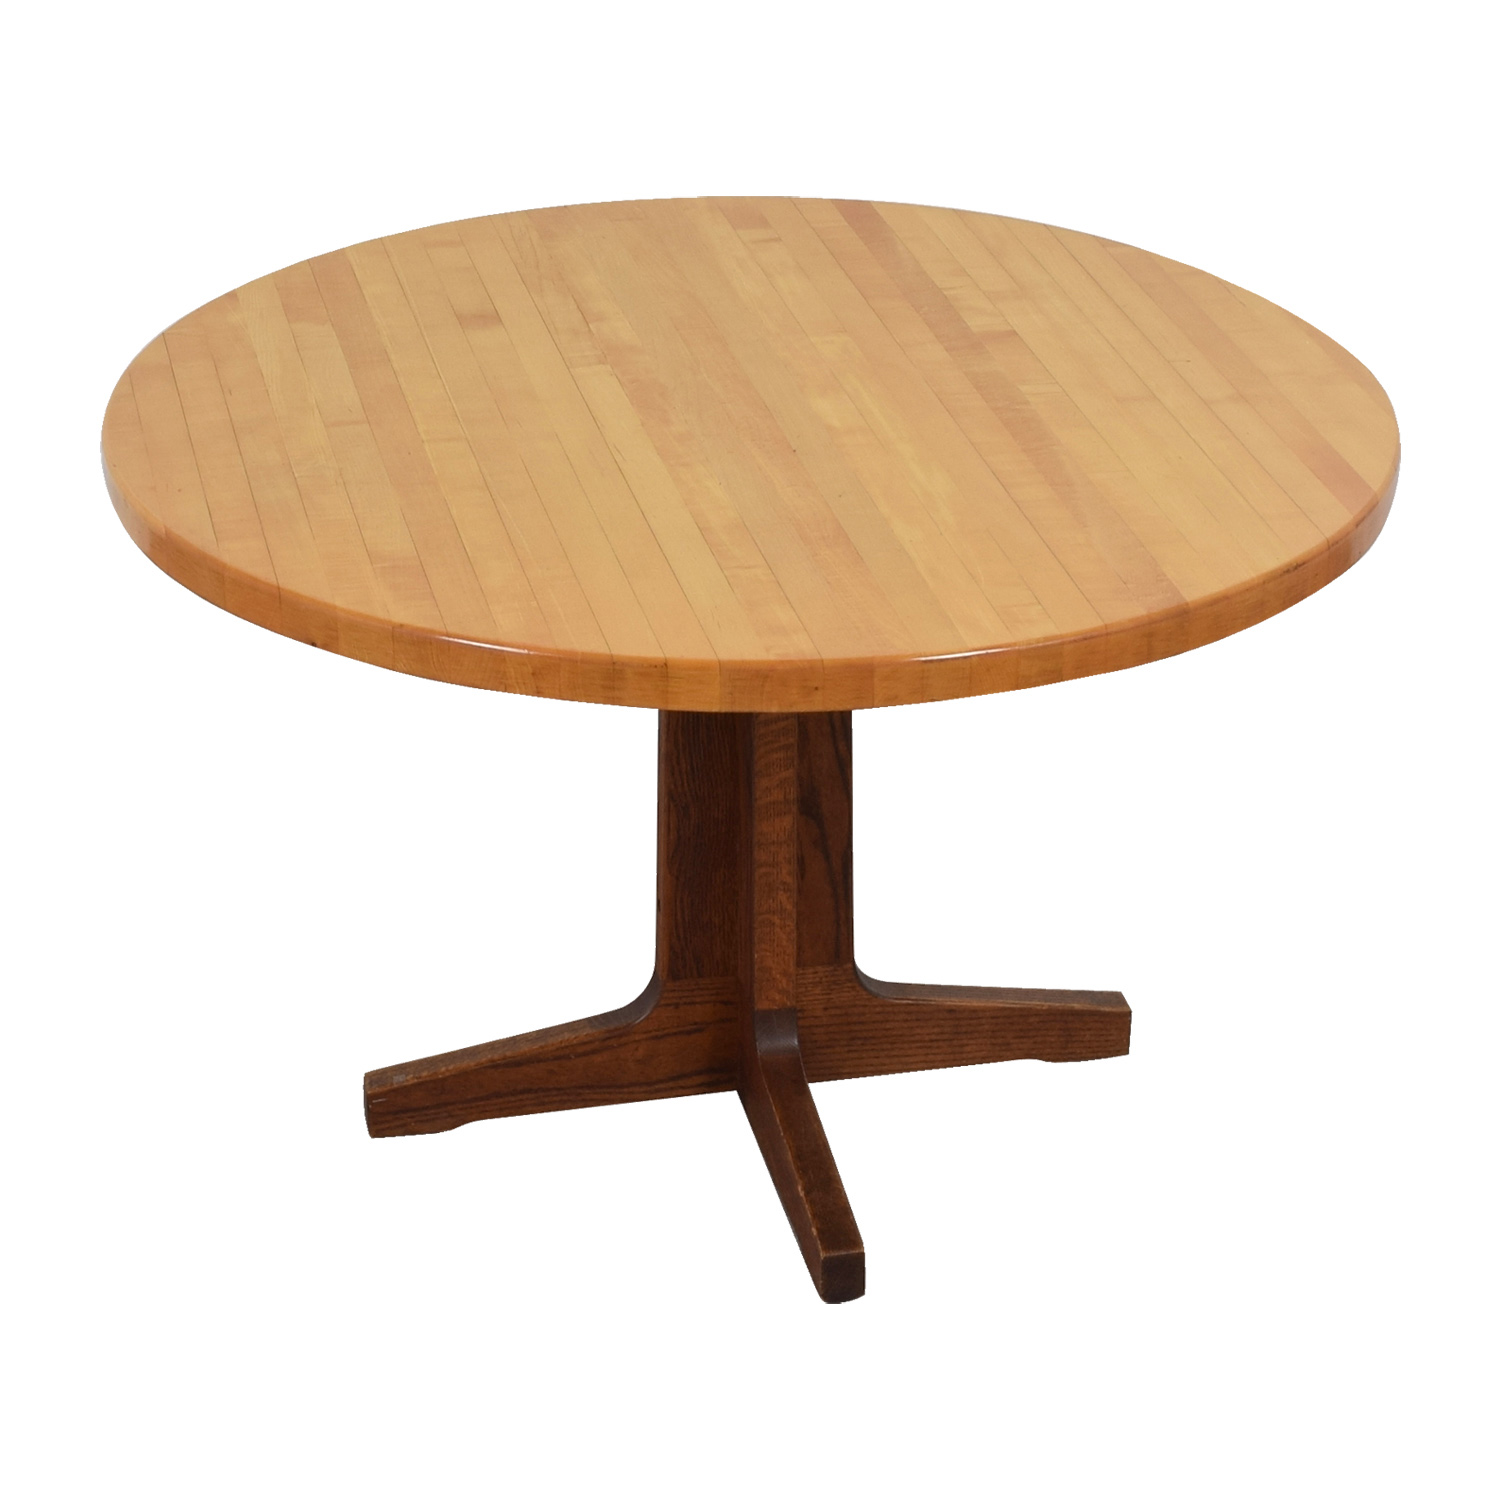 67% OFF - Butcher Block Furniture The Butcher Block Round Wood Table /  Tables